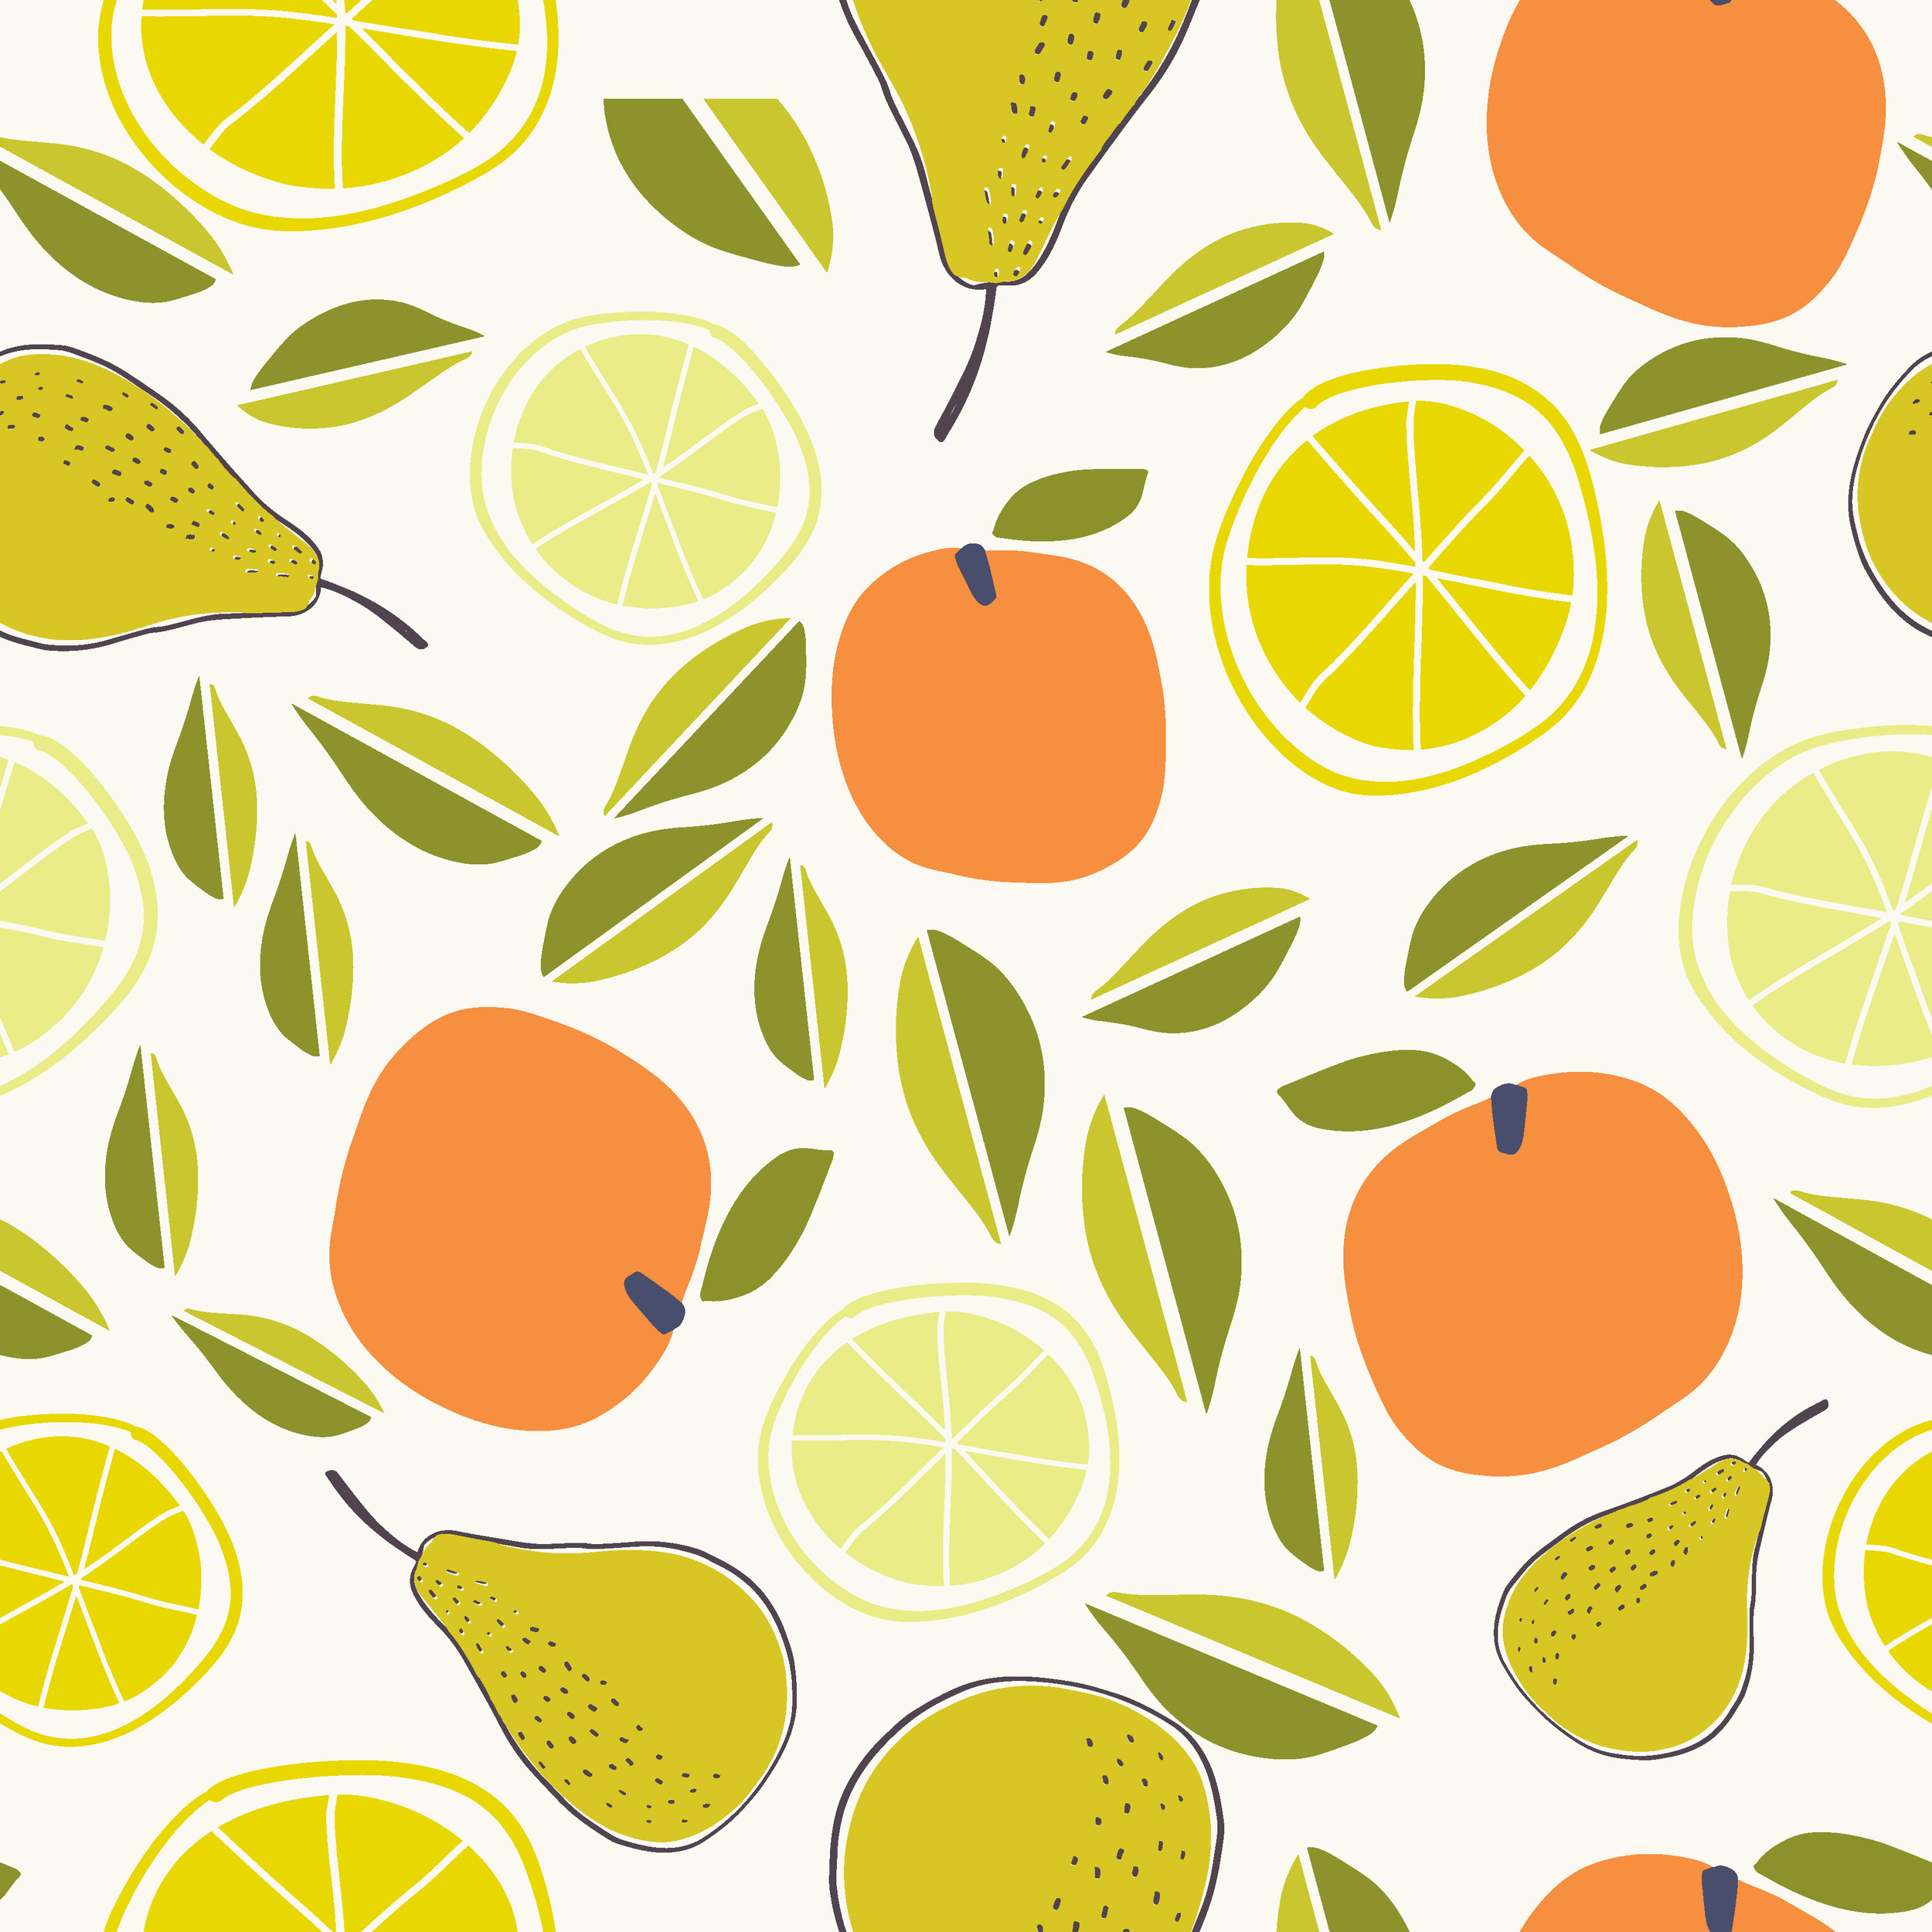 SUMMERFRUIT_Patterns-03.jpg